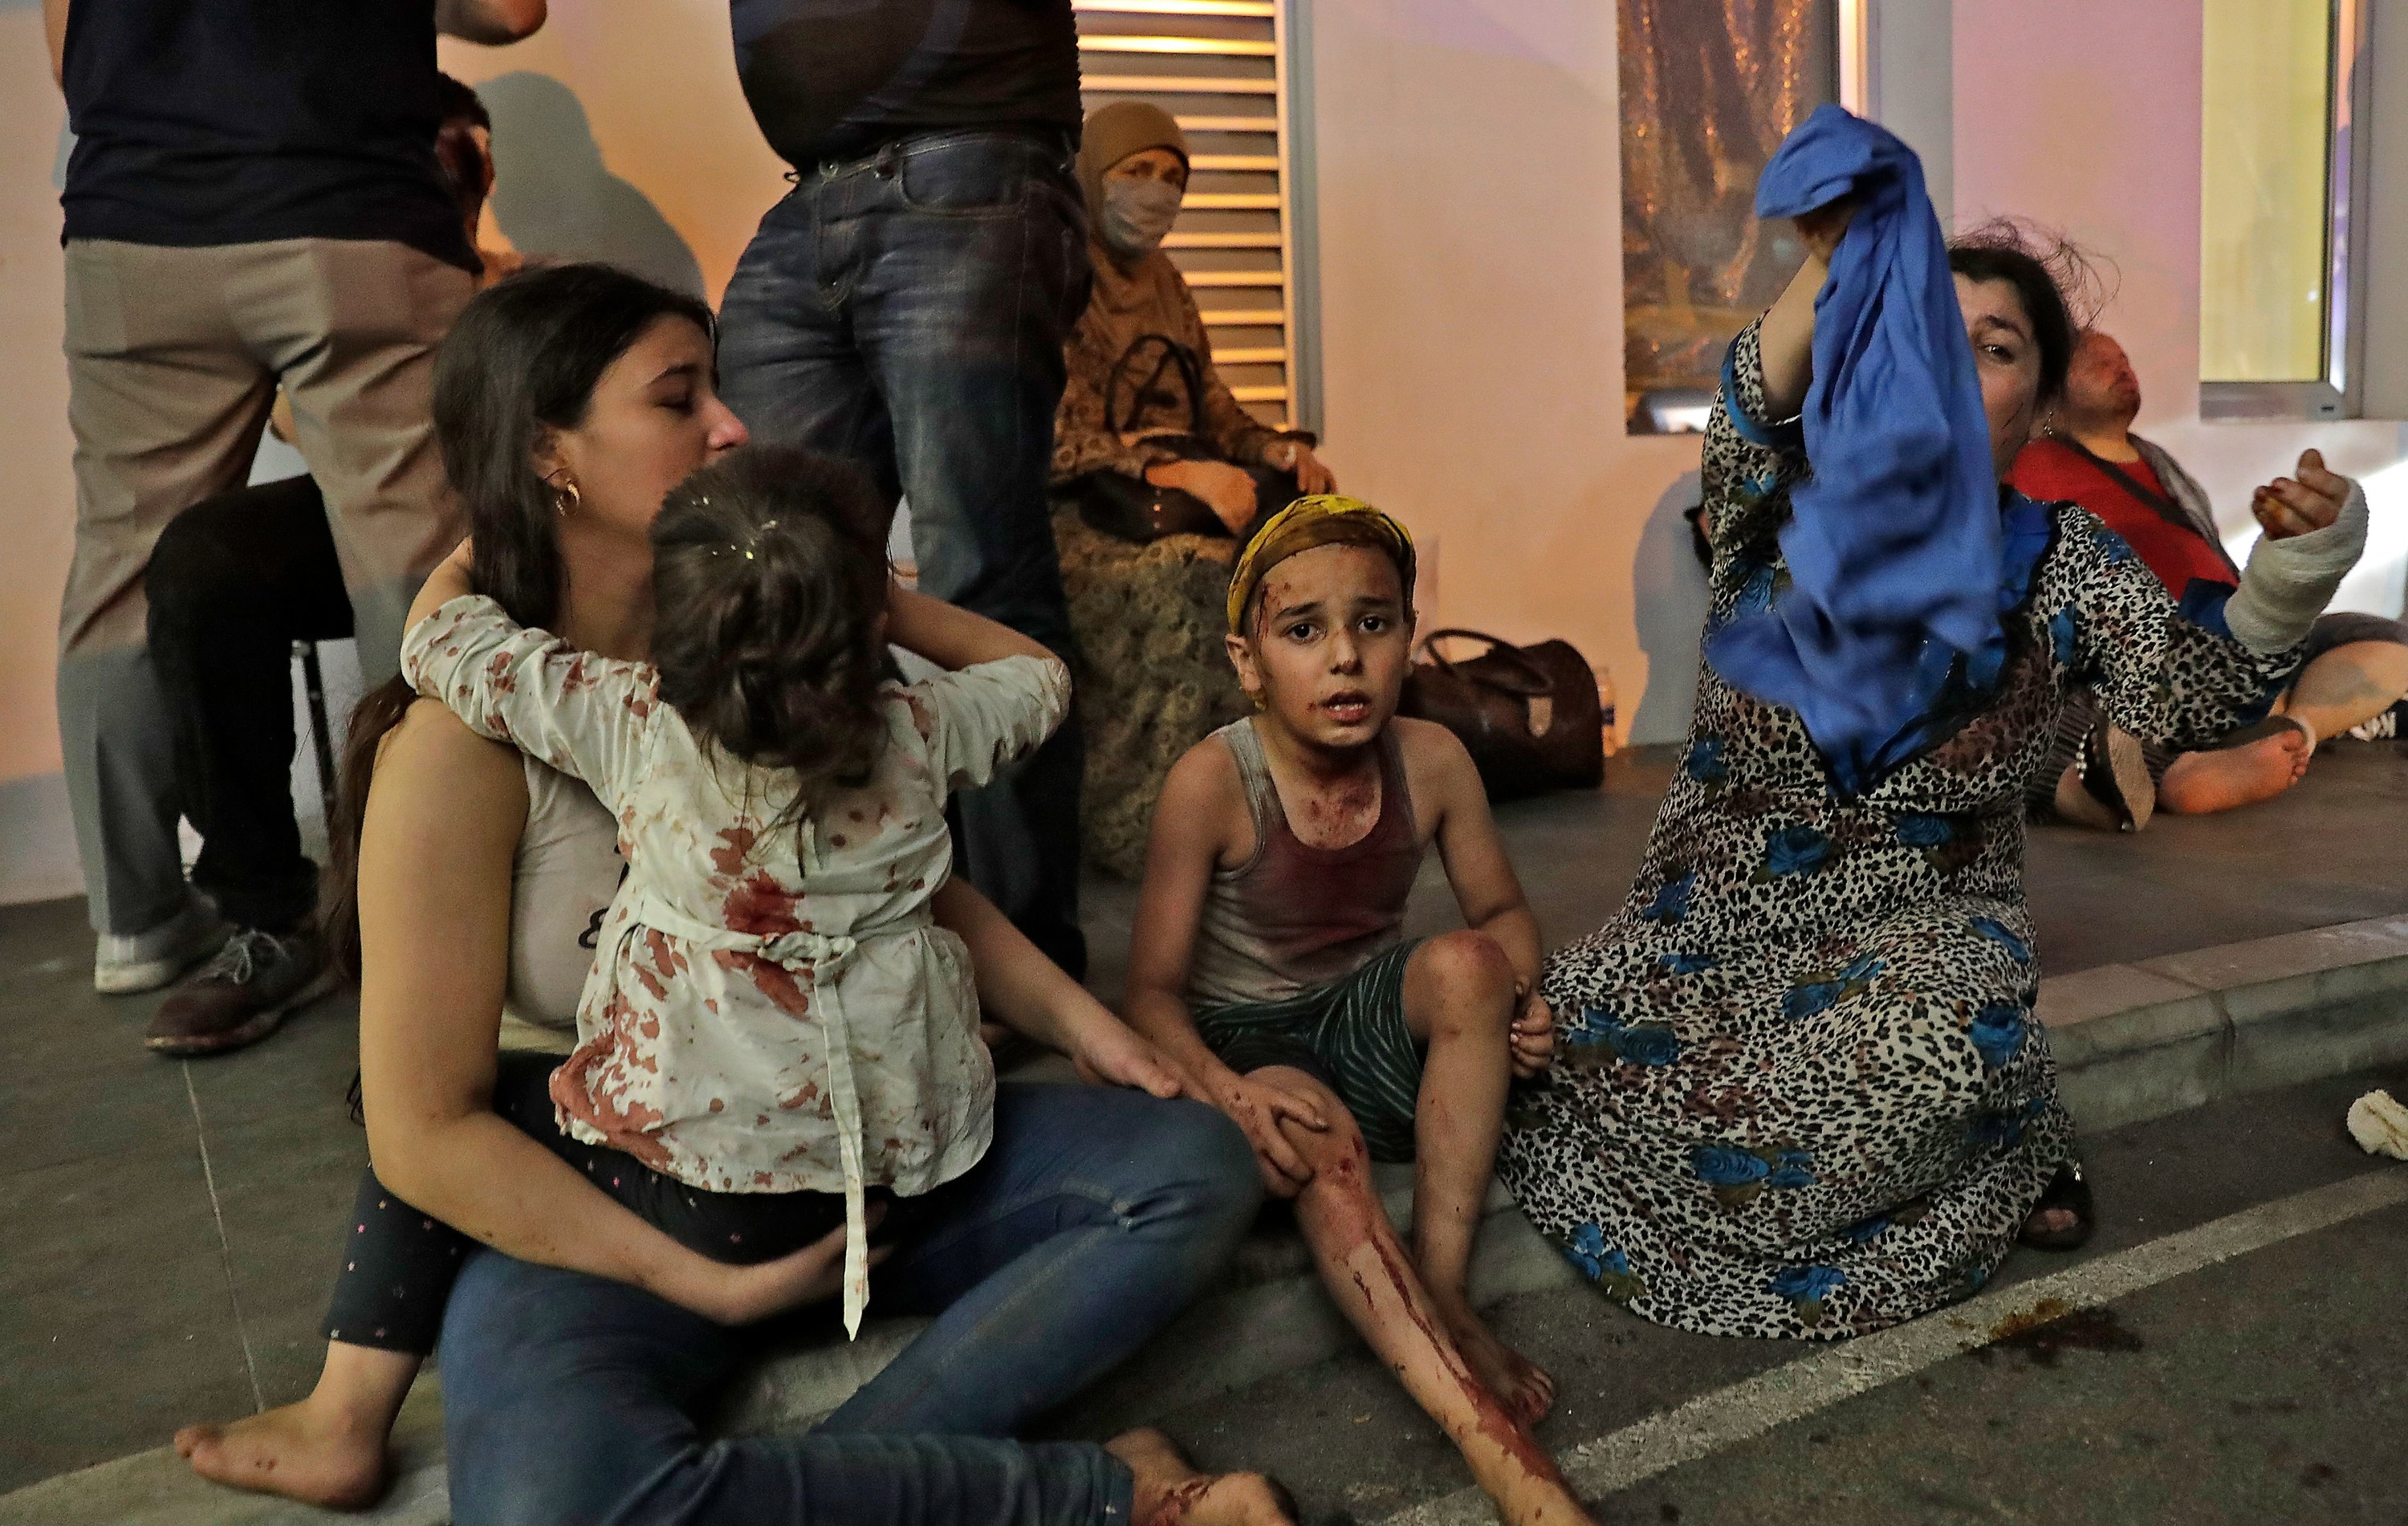 A woman holds her children, who have blood on them, while waiting outside the hospital